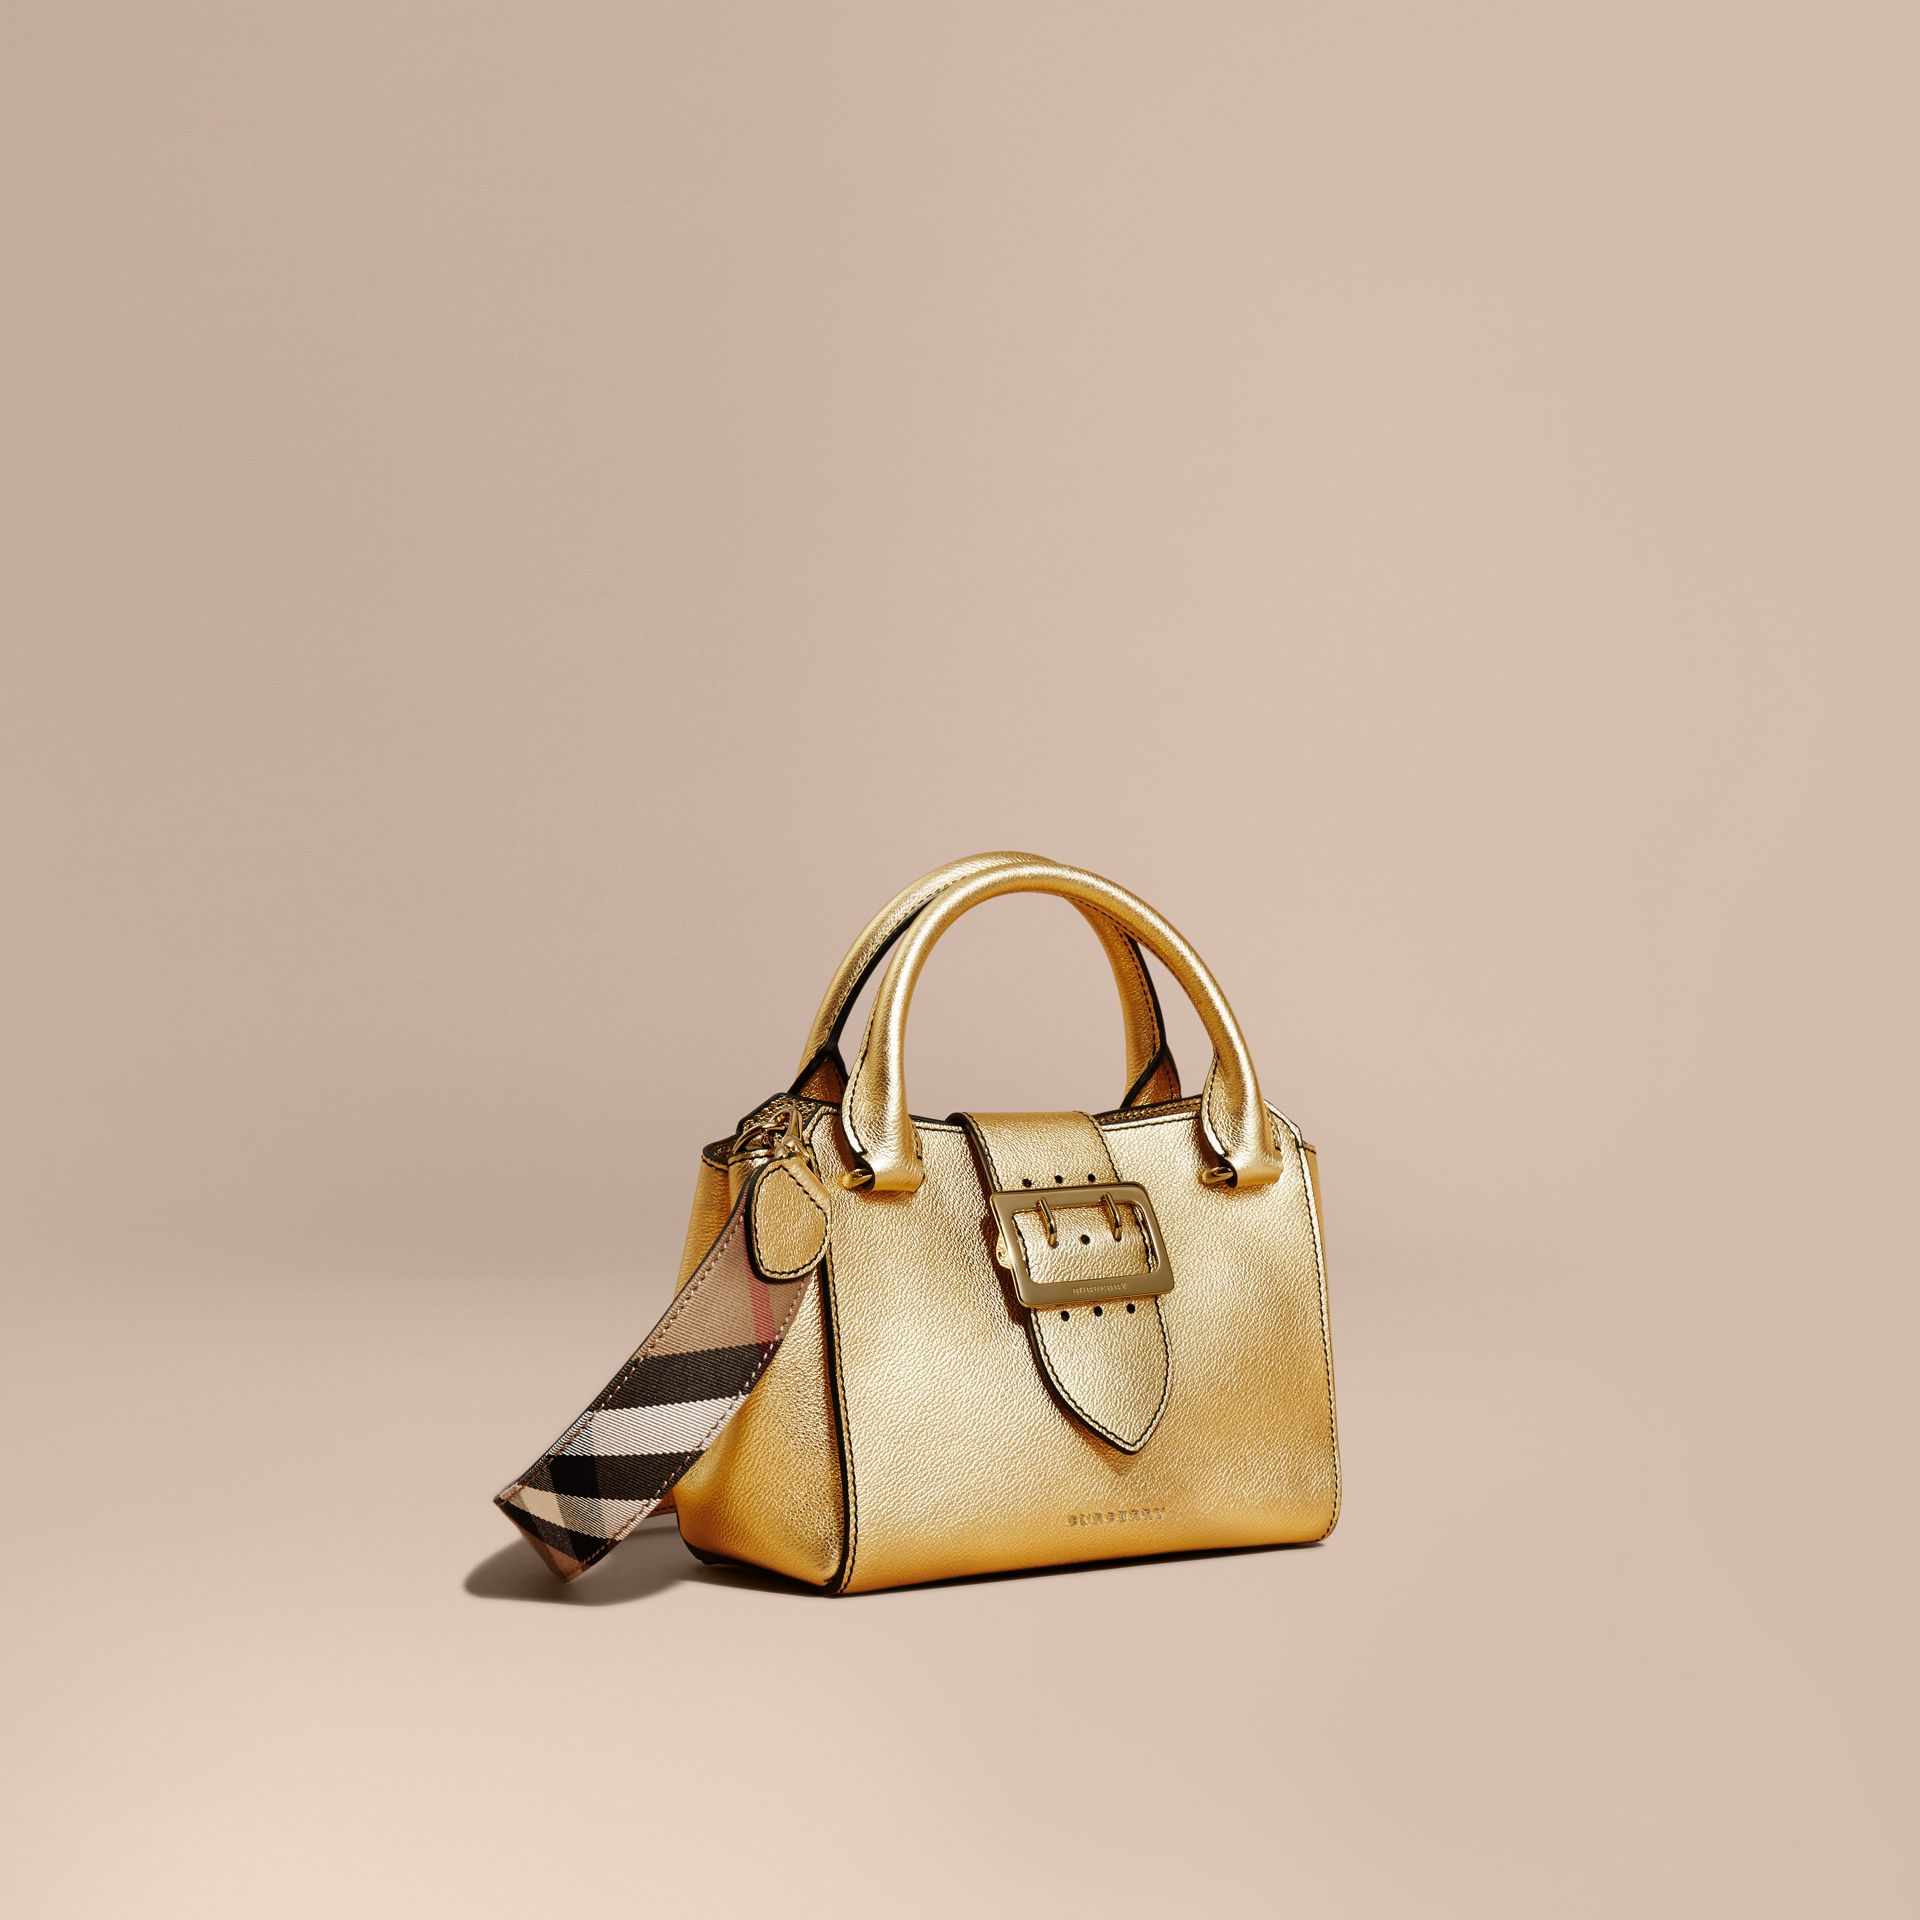 Gold The Small Buckle Tote in Metallic Leather - gallery image 1